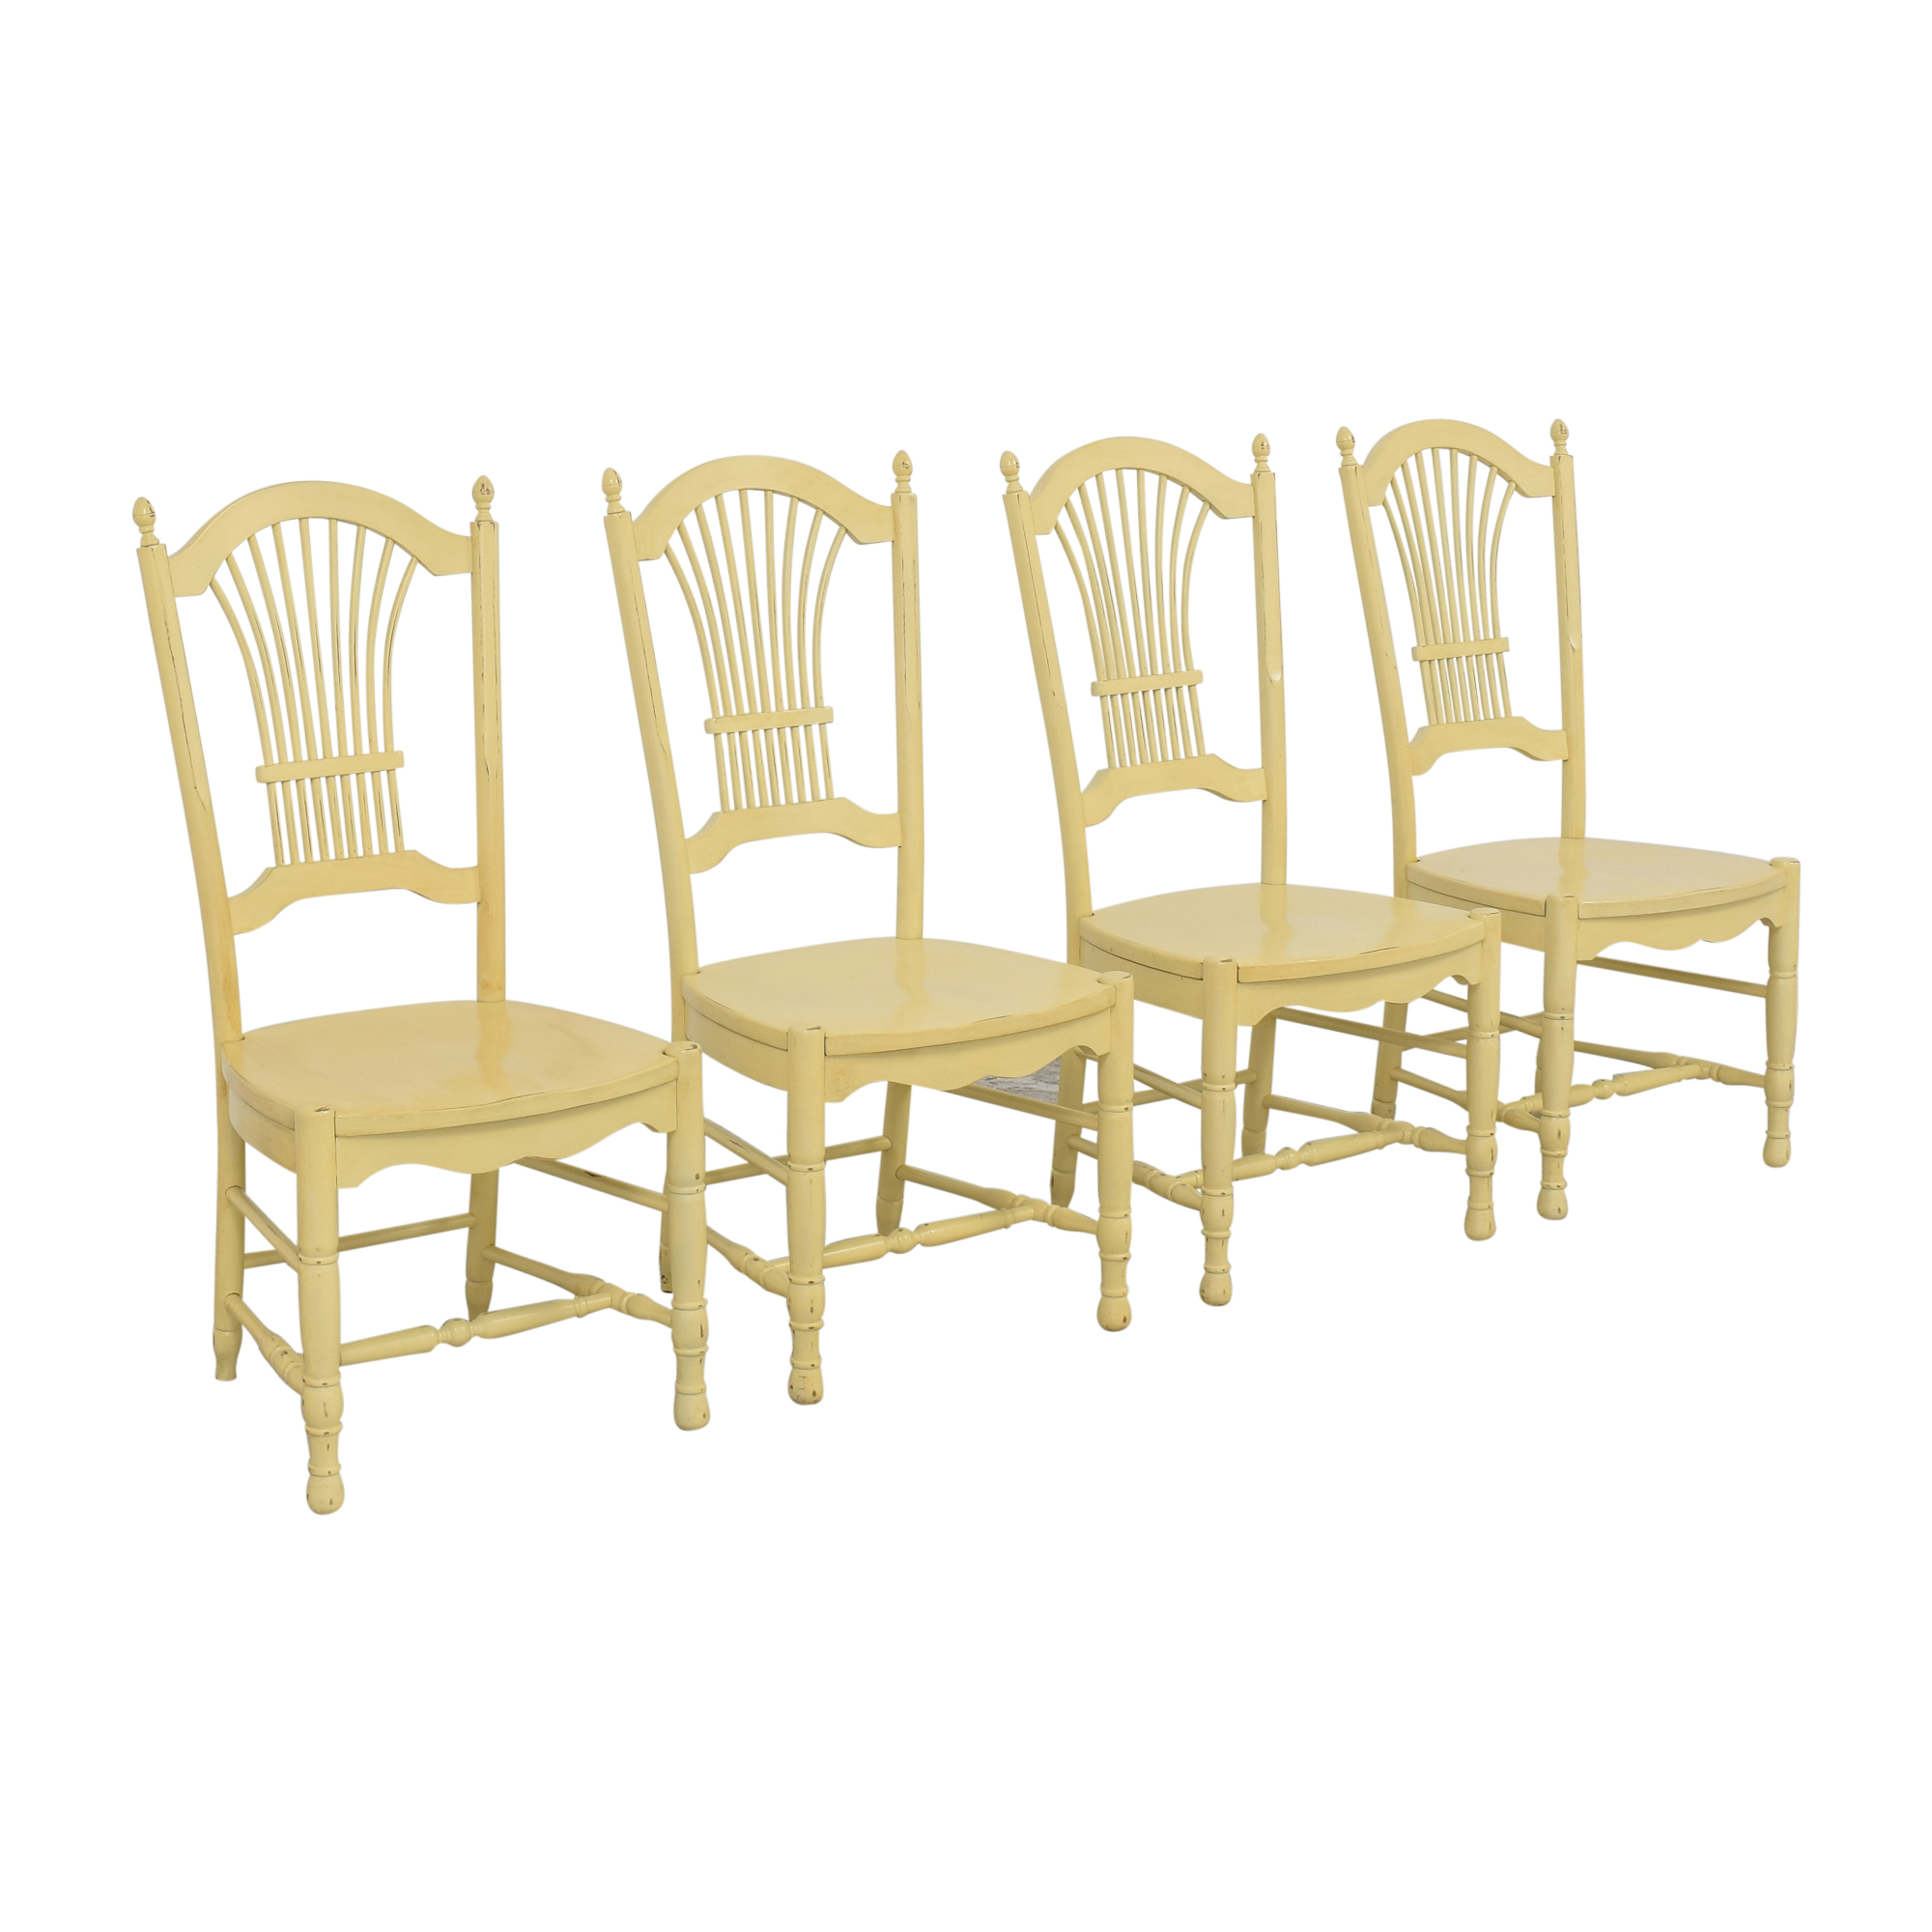 Ethan Allen Ethan Allen Wheat Back Dining Chairs coupon